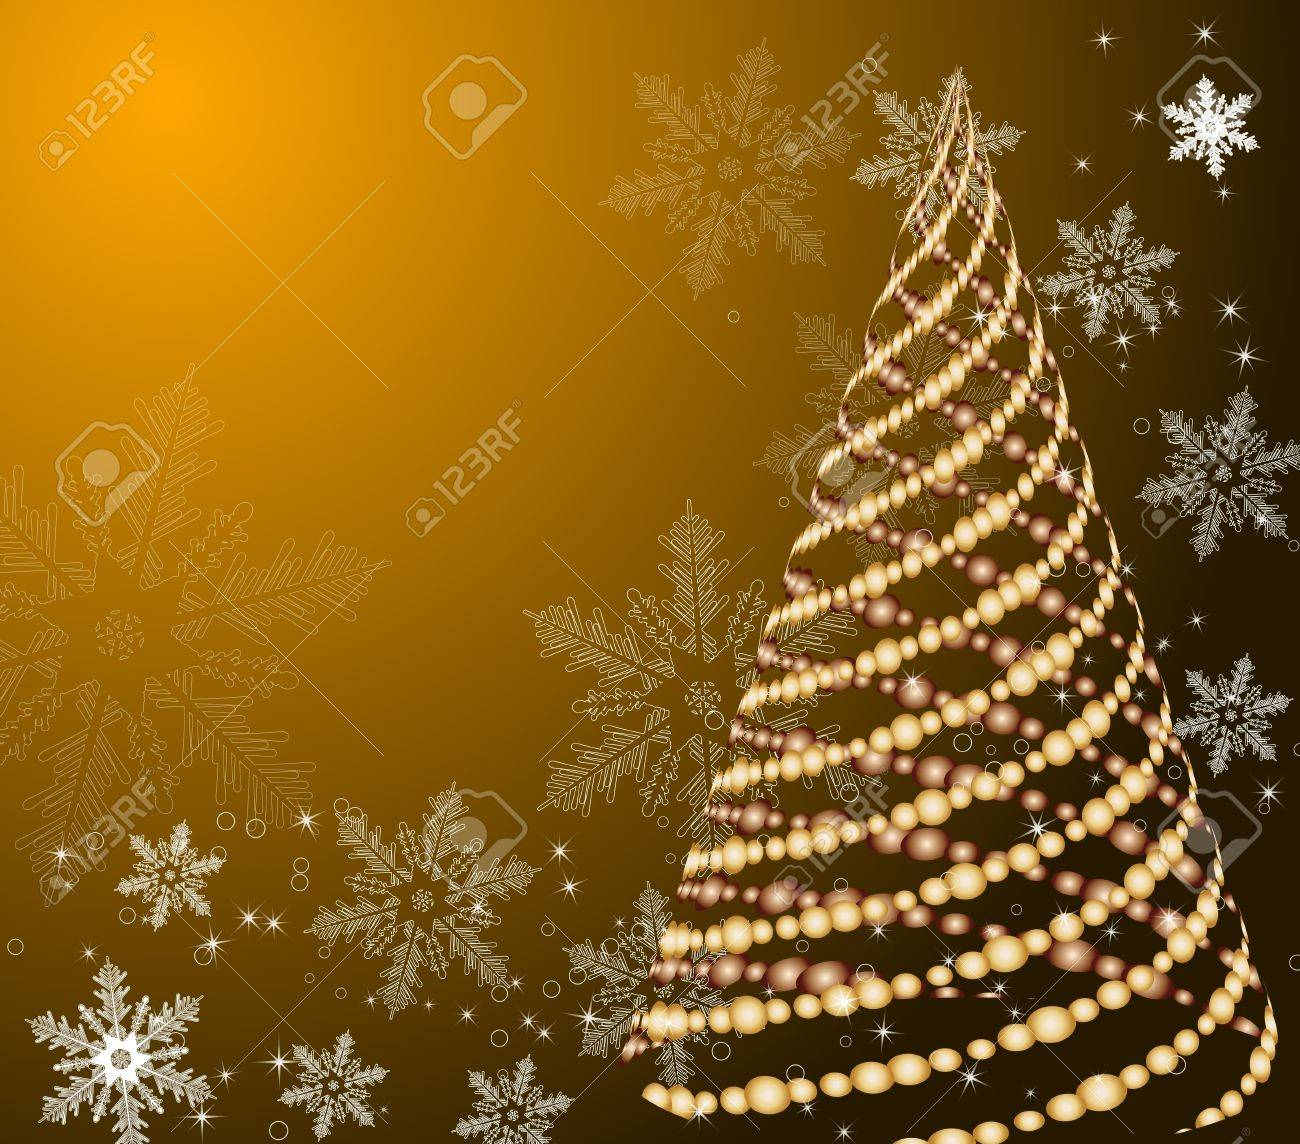 Stylized Vector Gold Christmas Tree On Decorative Background Stock